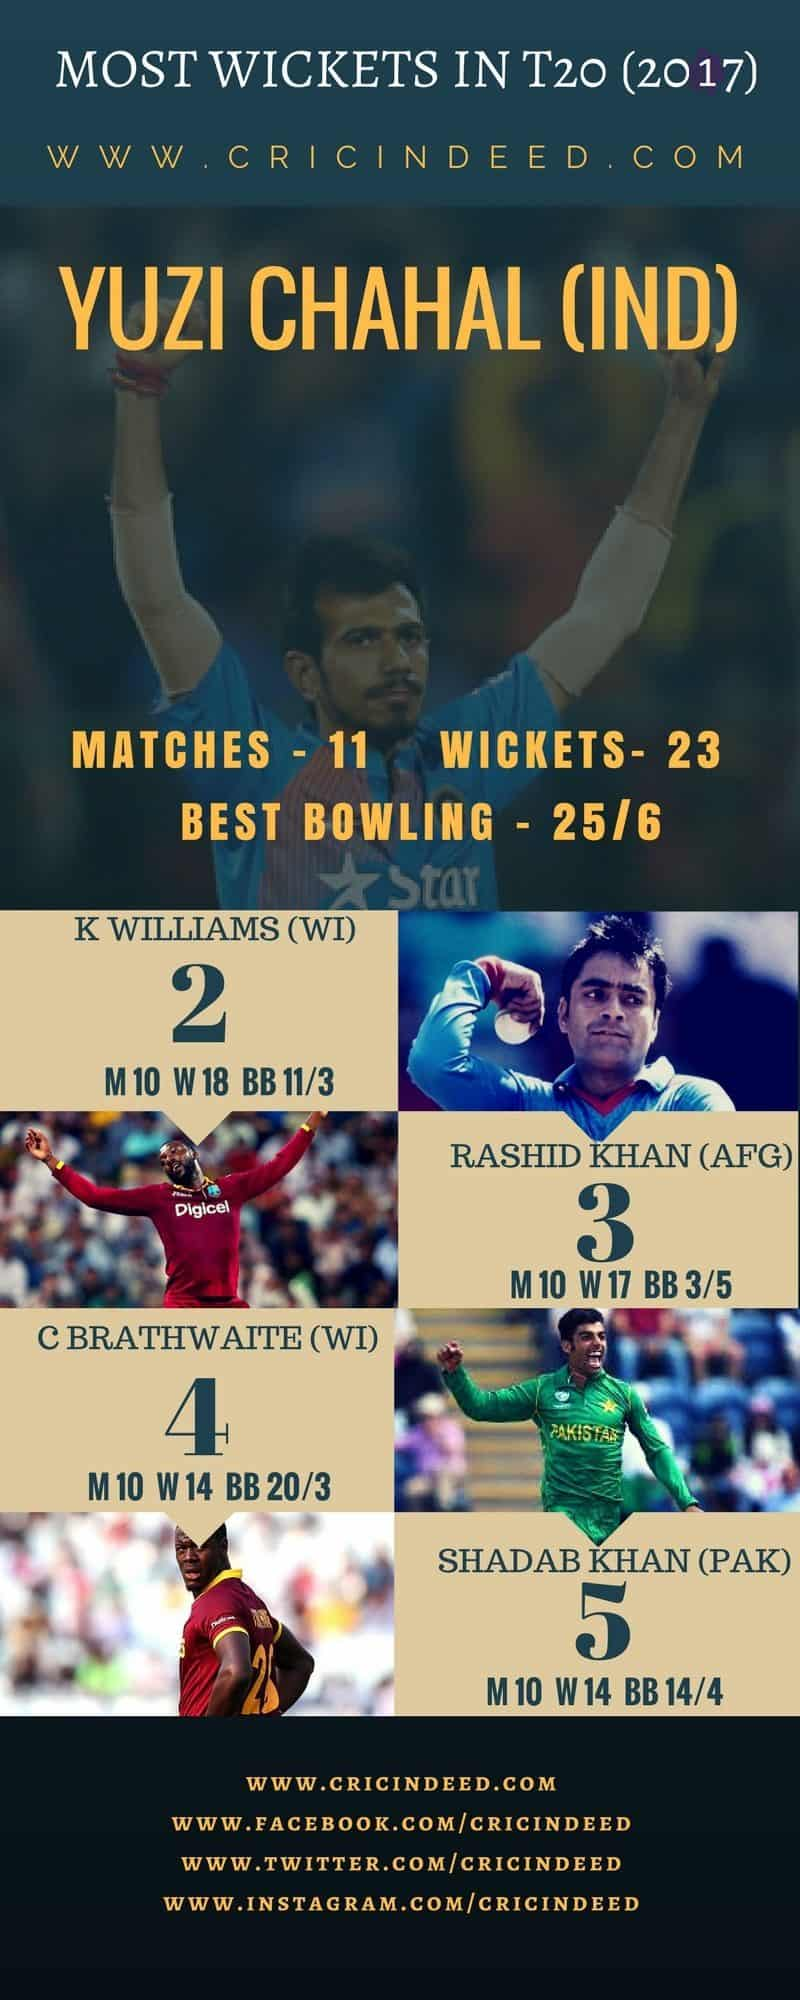 MOST WICKETS IN T20 2017